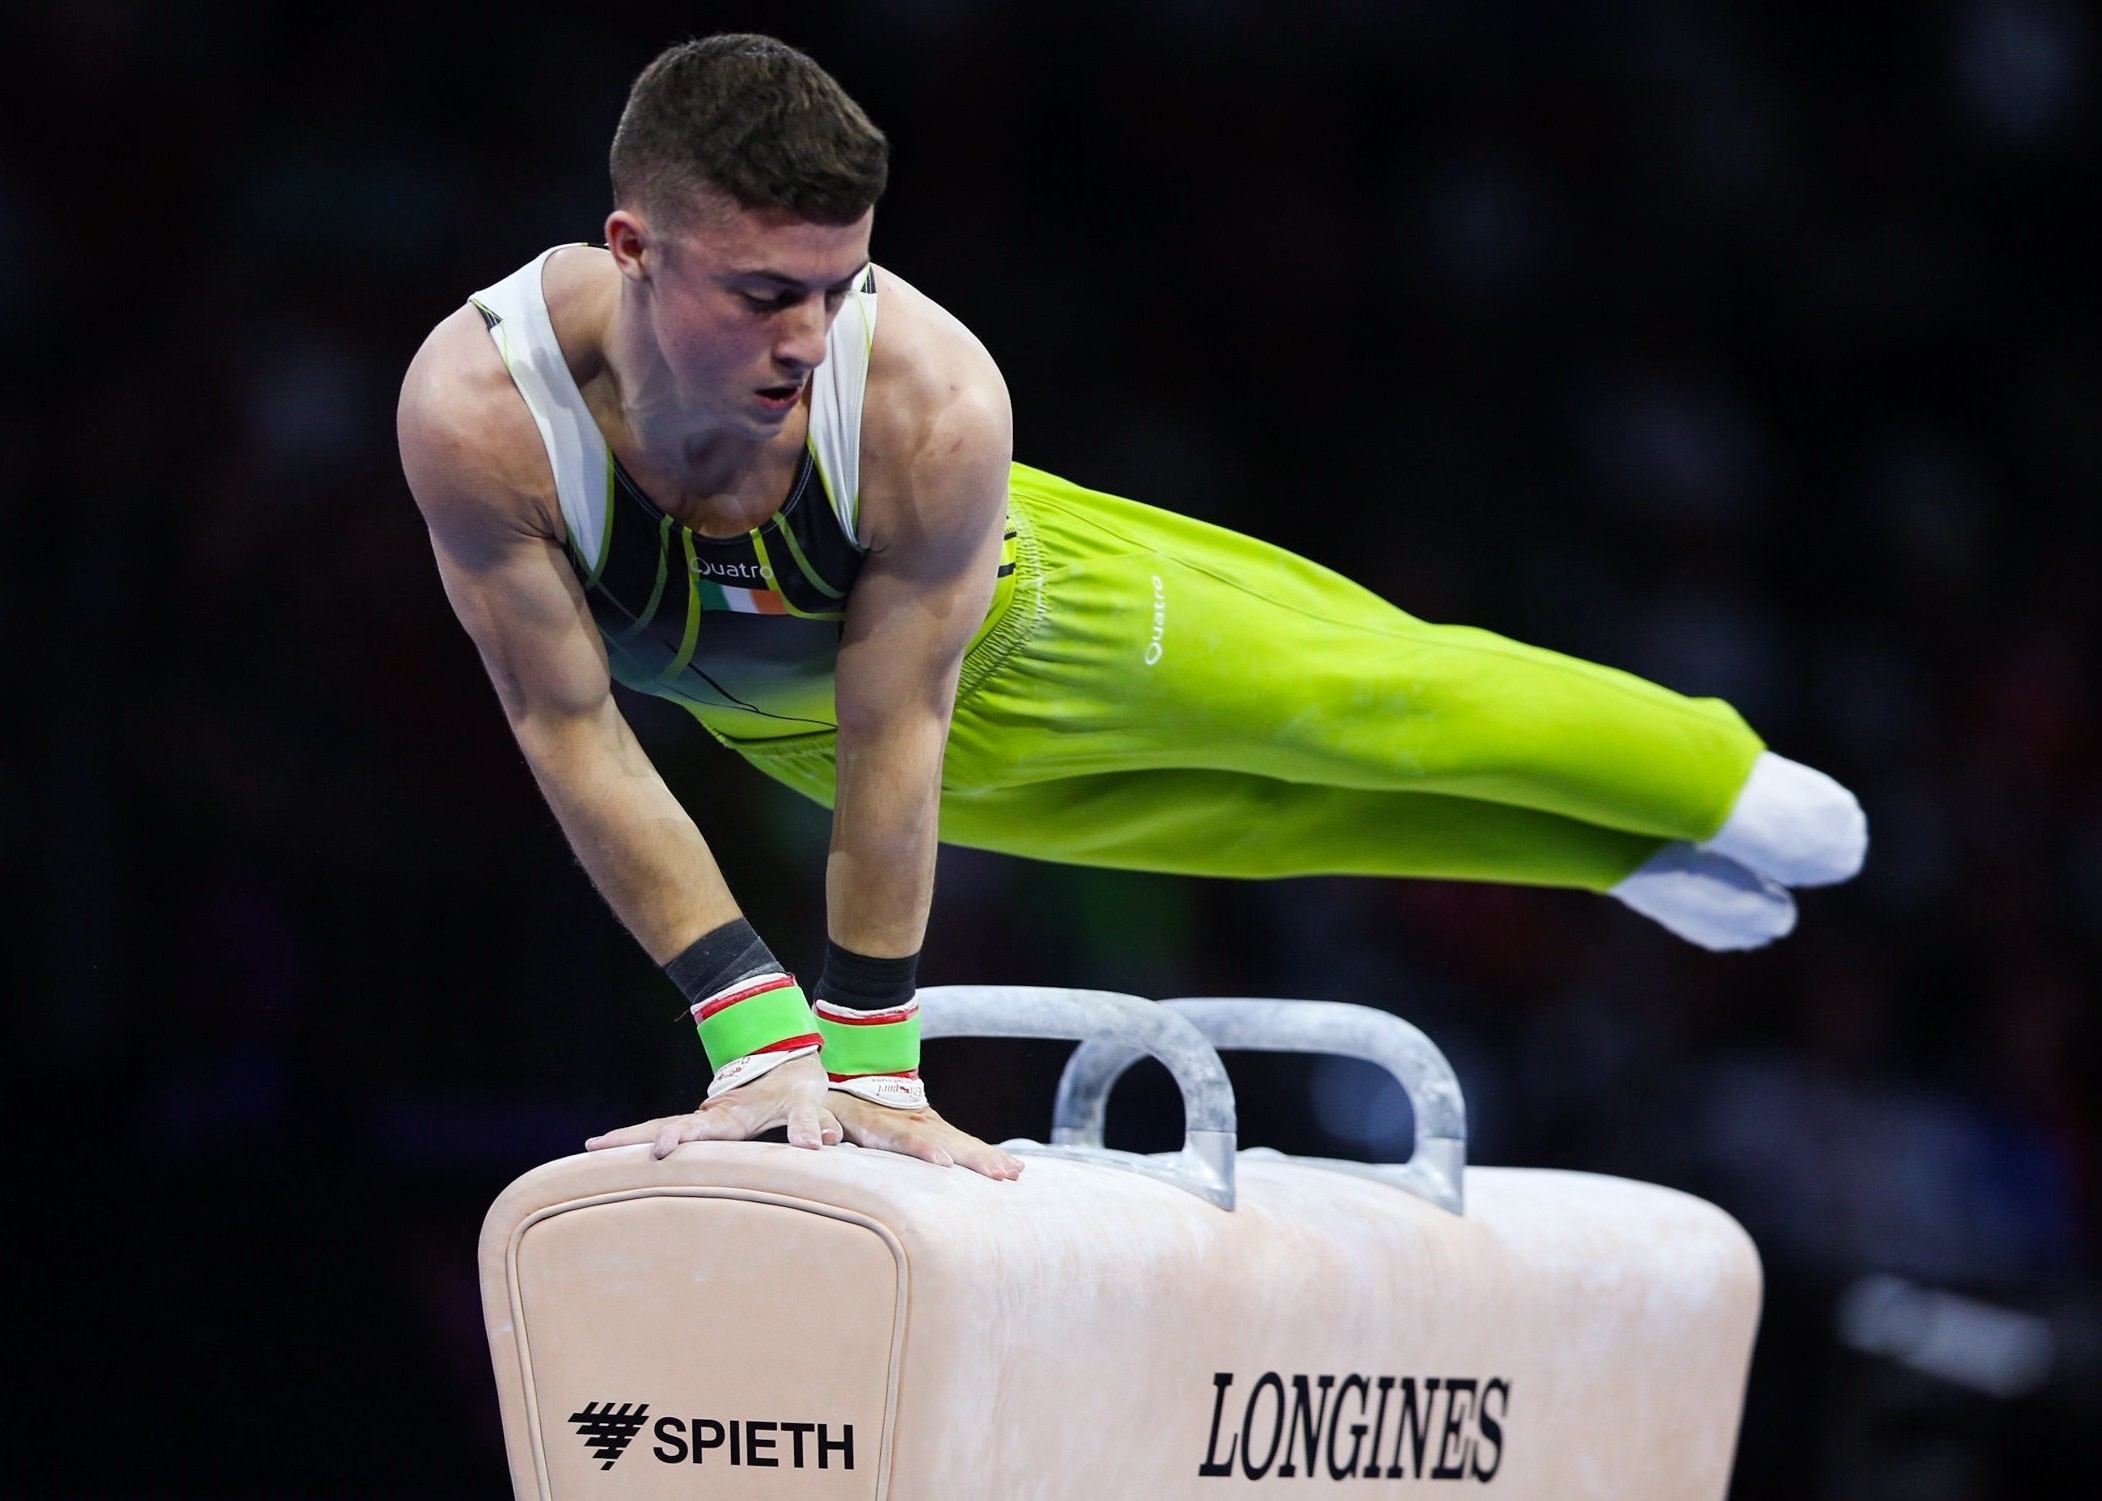 Rhys McClenaghan wins bronze at World Championships